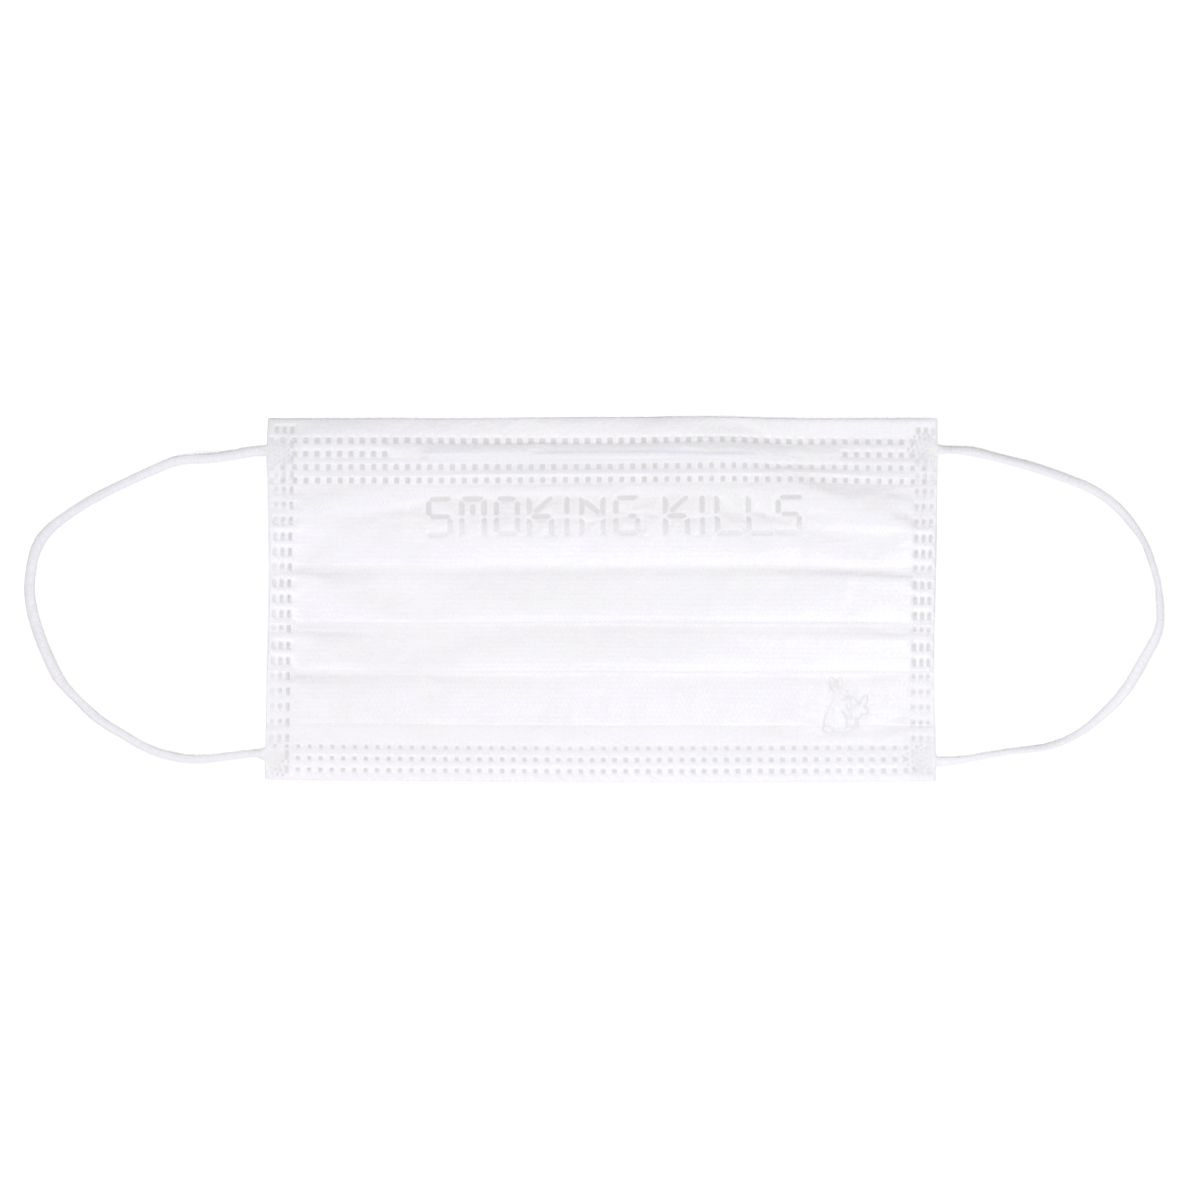 #FR2 PLEATED FACE MASK (10 PIECES SET) / 001 : WHITE